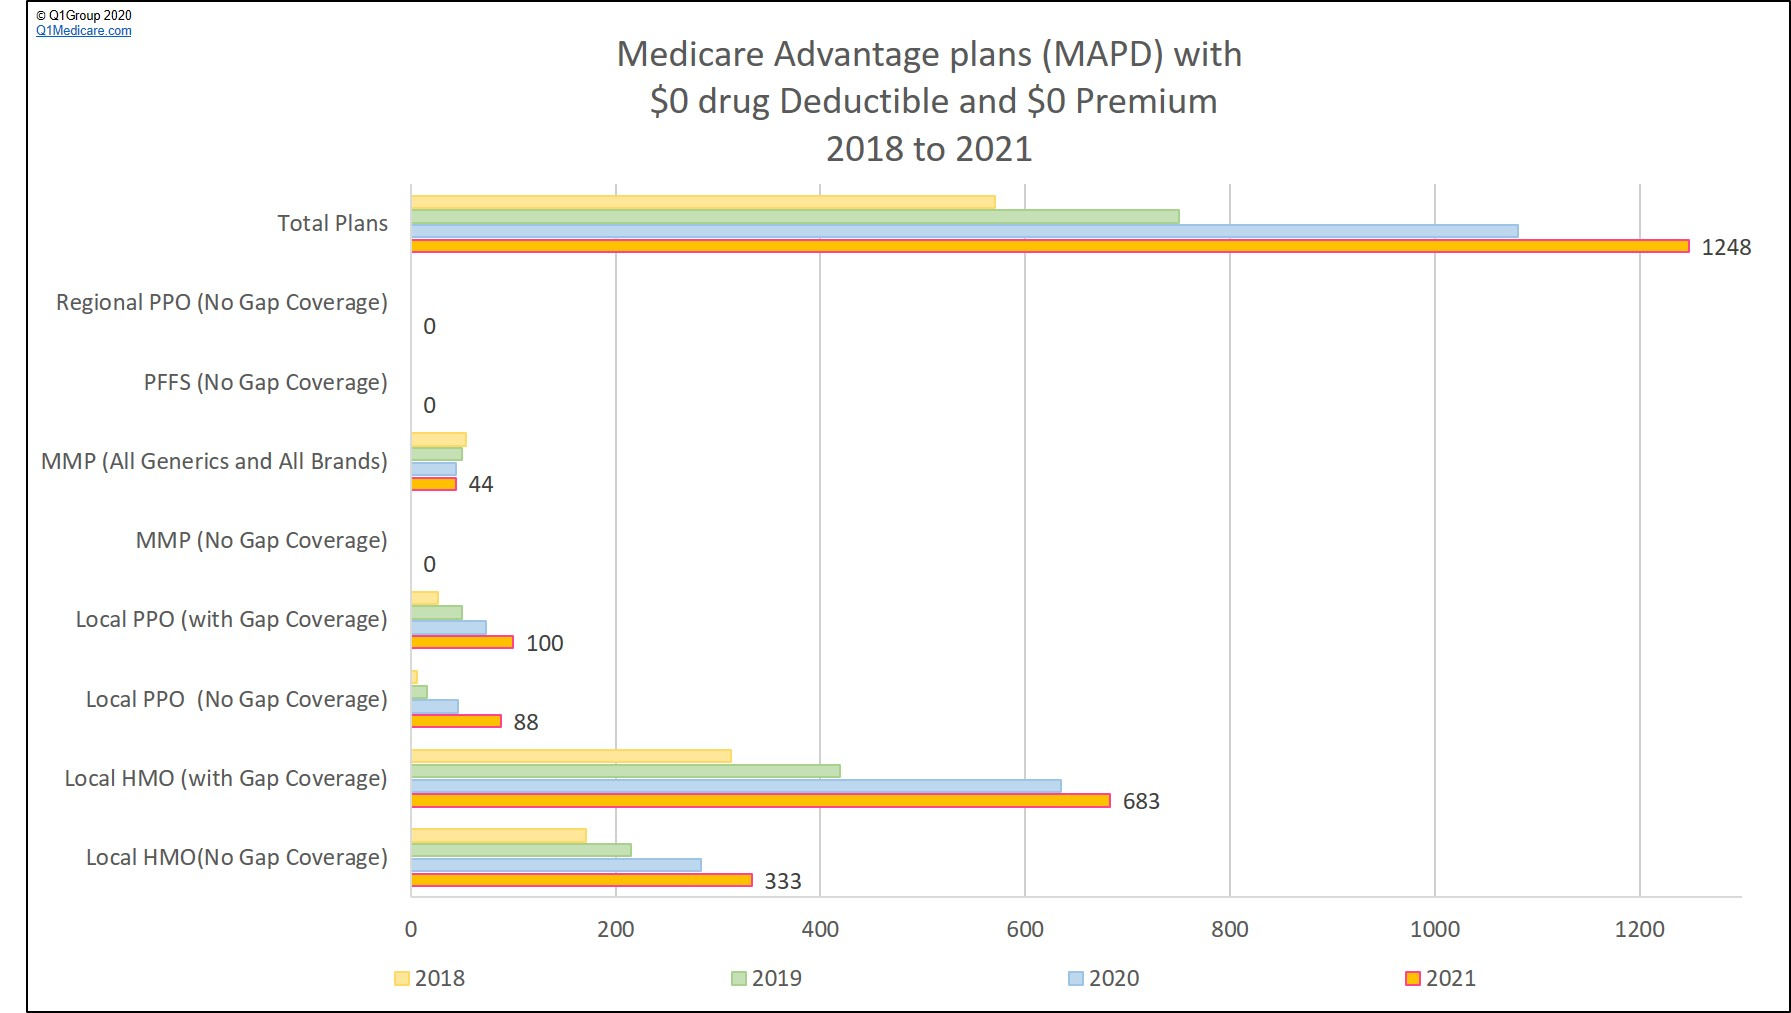 Medicare Advantage MAPD plans with a zero premium and zero drug deductible